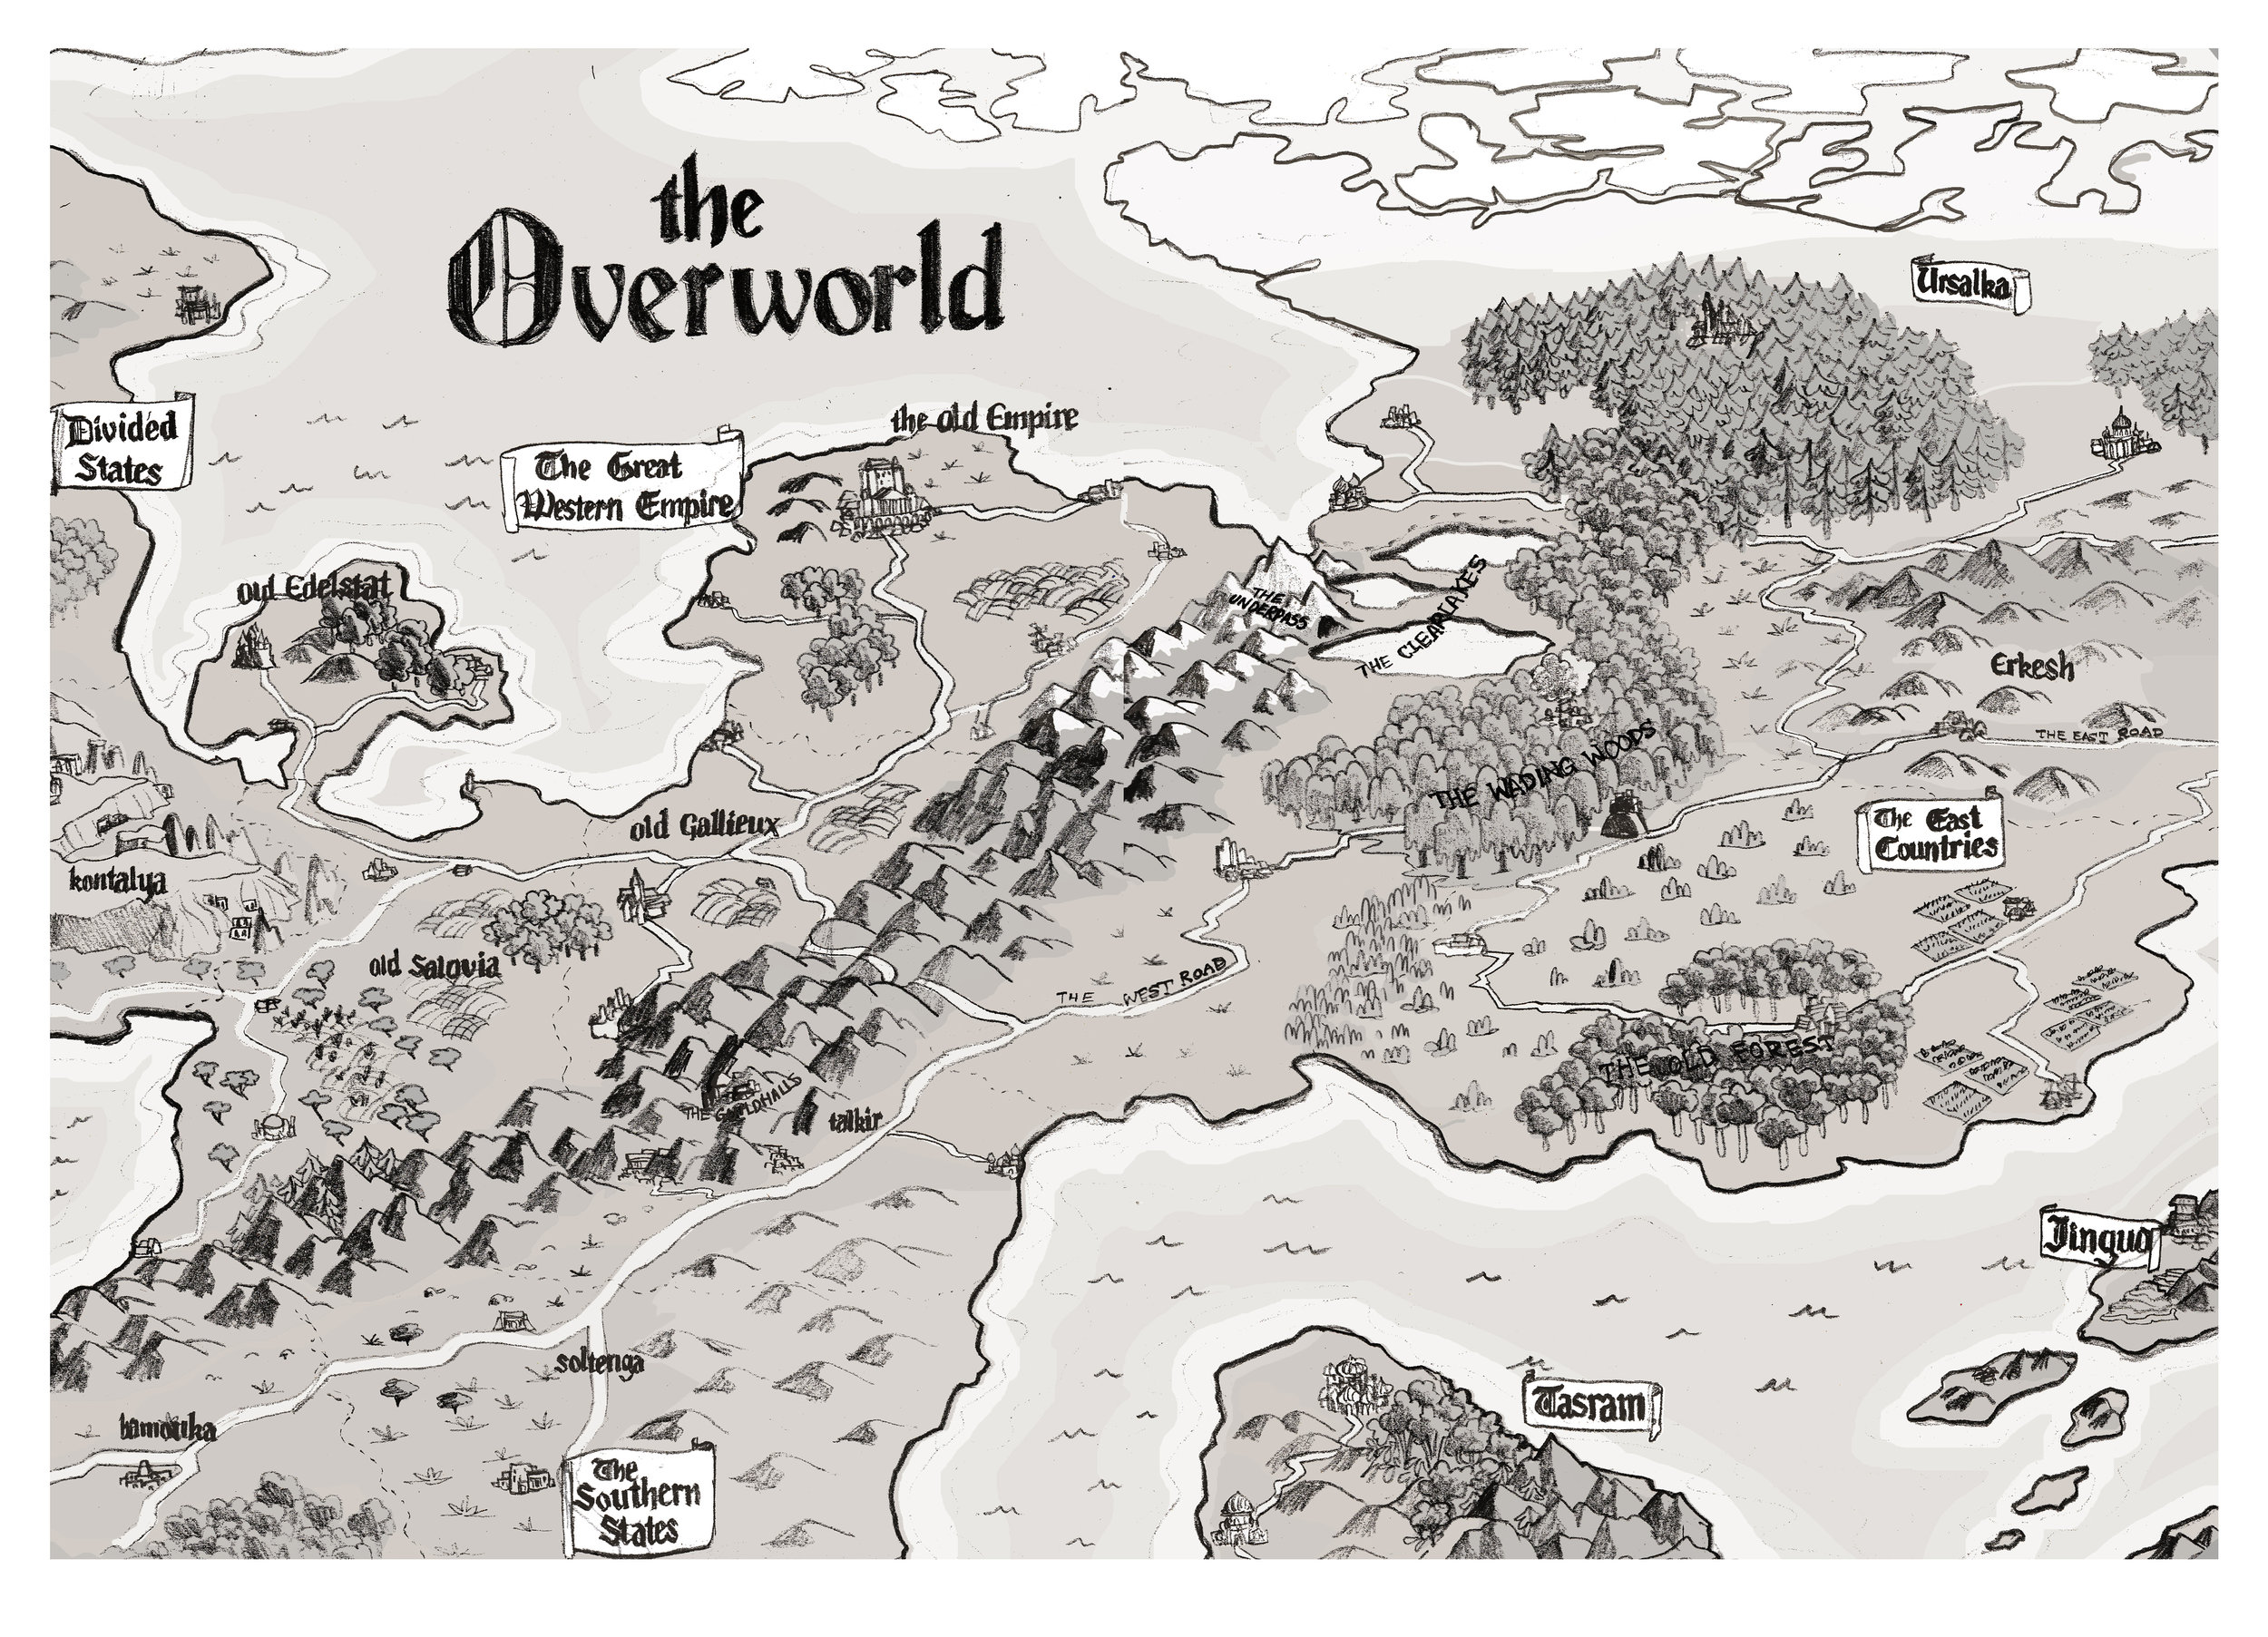 Overworld map by hand pale.jpg